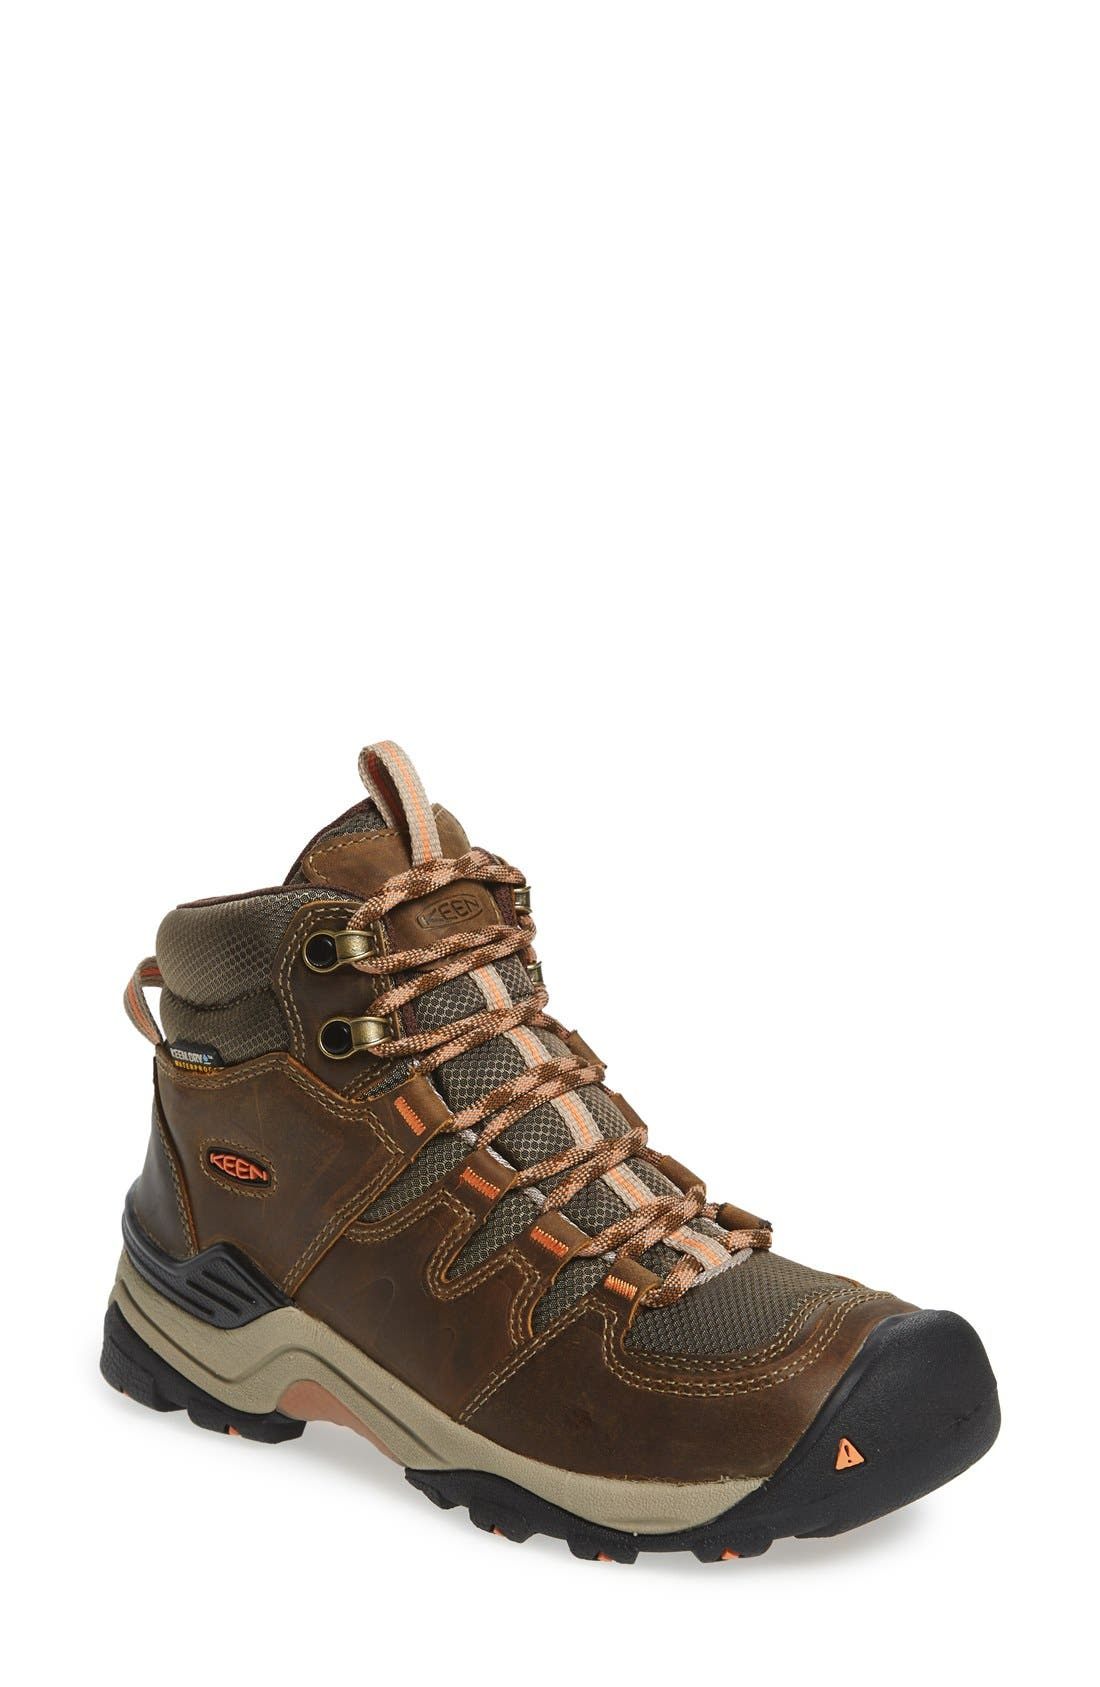 Main Image - Keen Gypsum II Mid Waterproof Hiking Boot (Women)